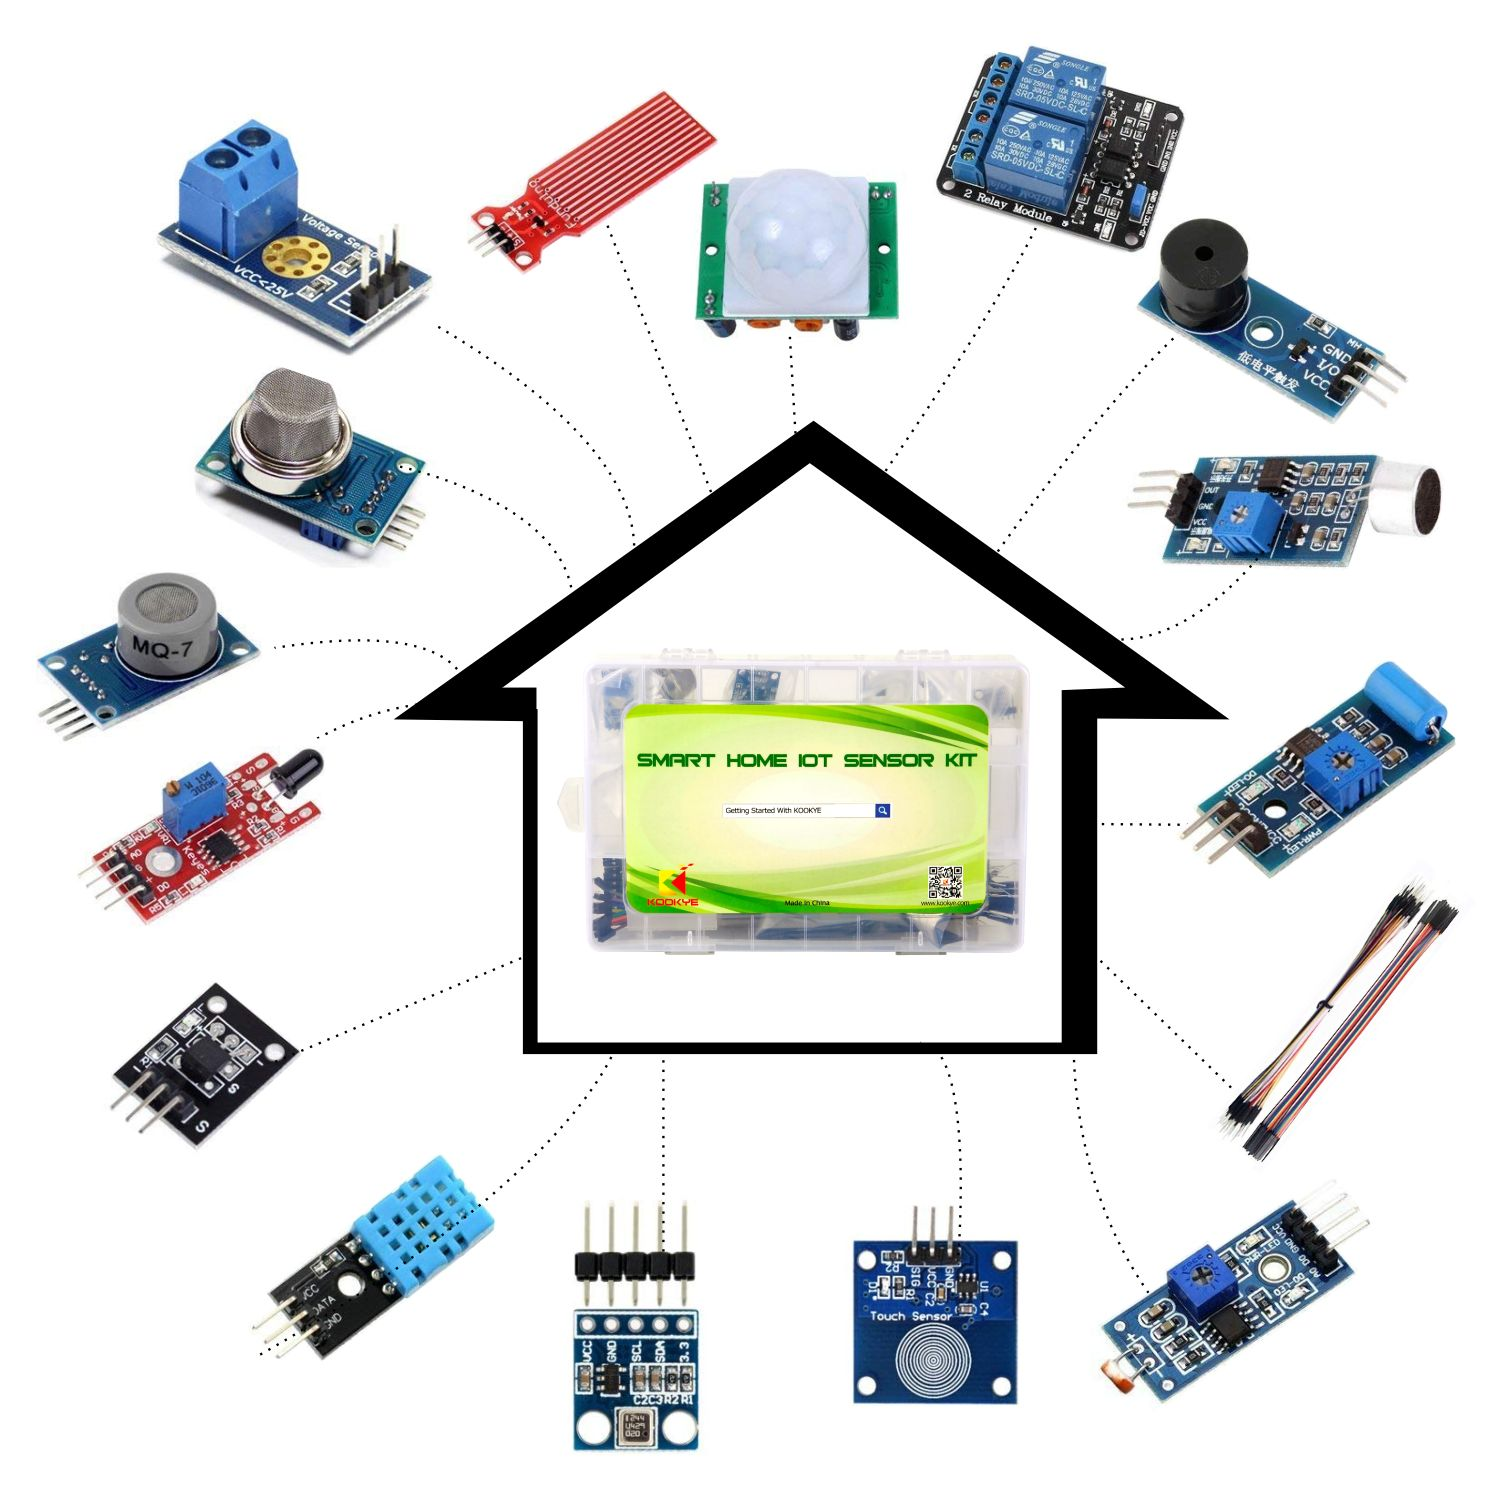 Smart Home IoT センサー キット